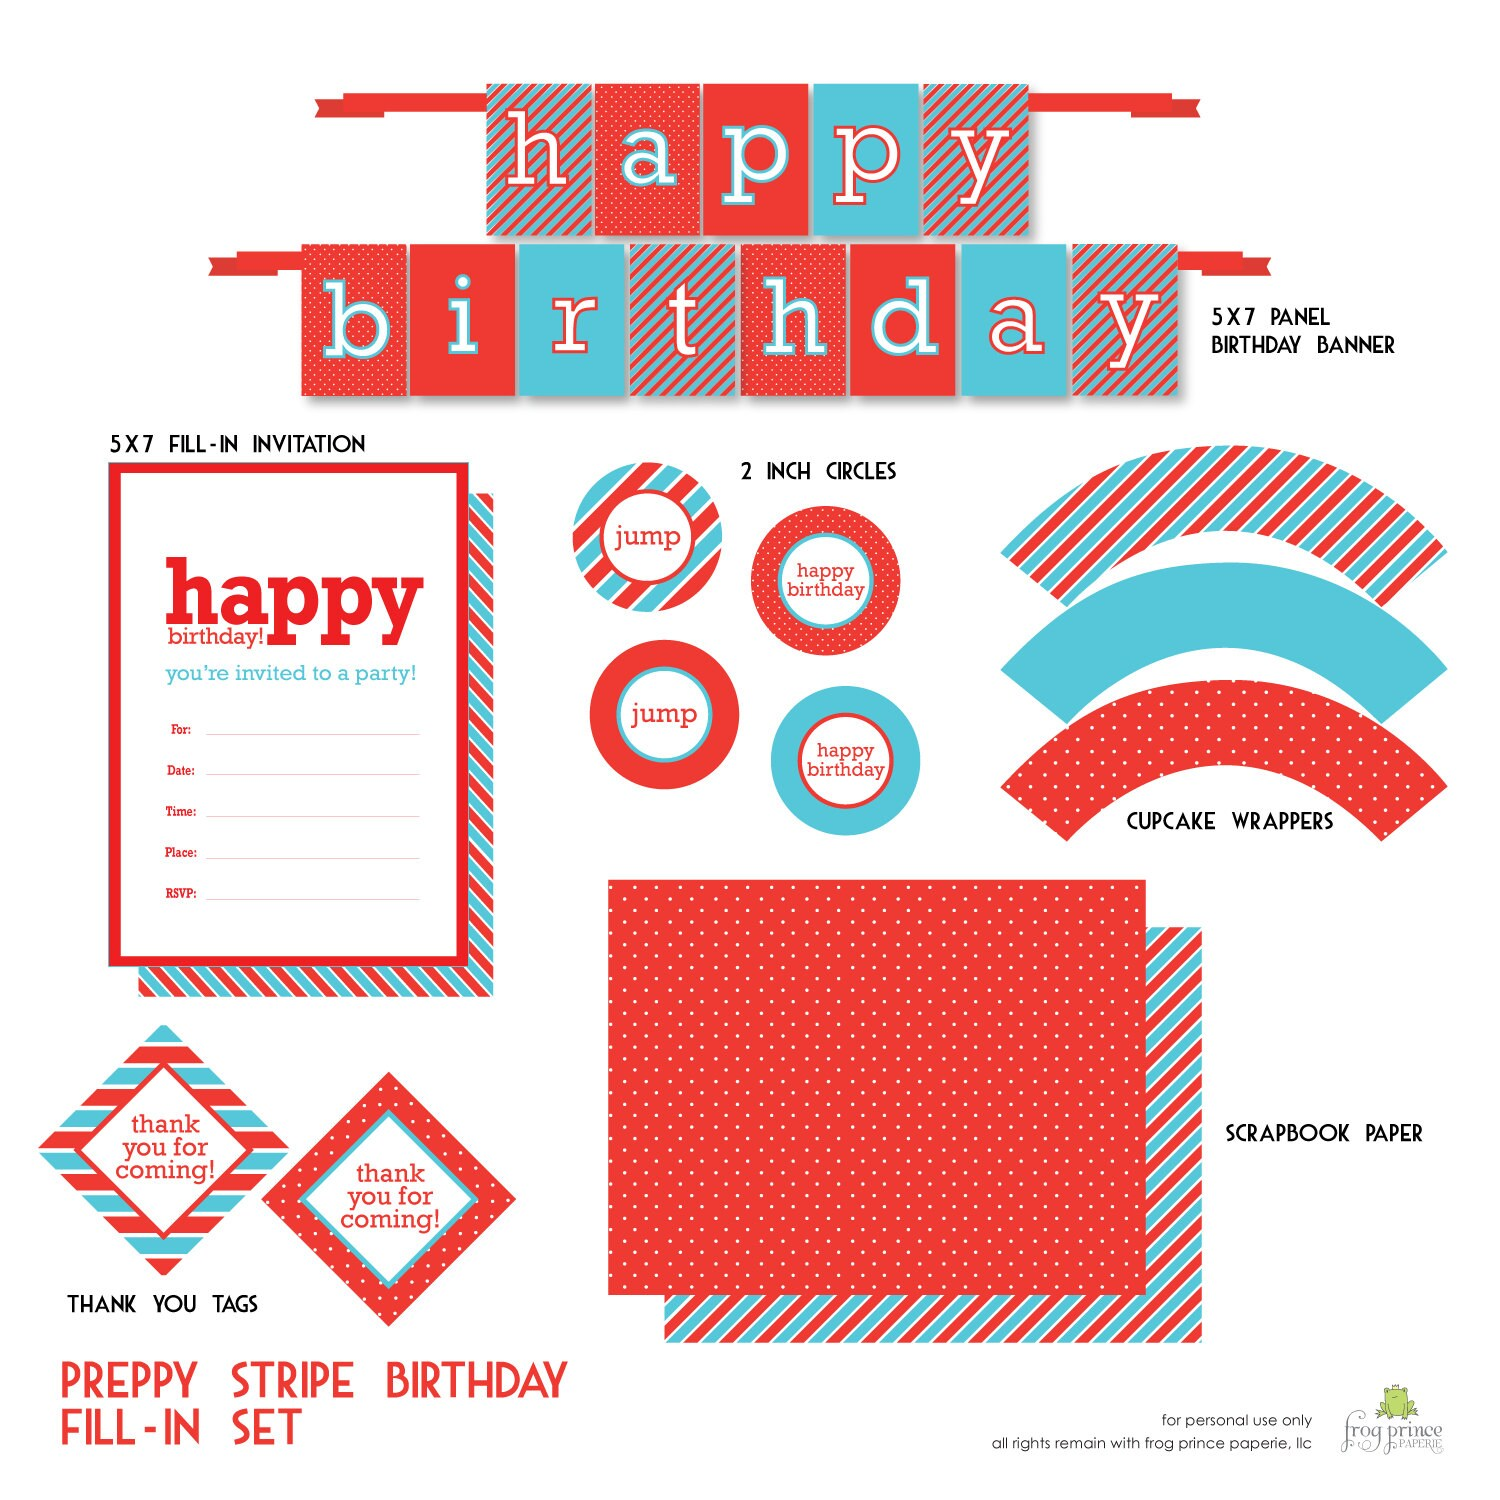 Preppy Stripes Fill-In Printable Party Pack